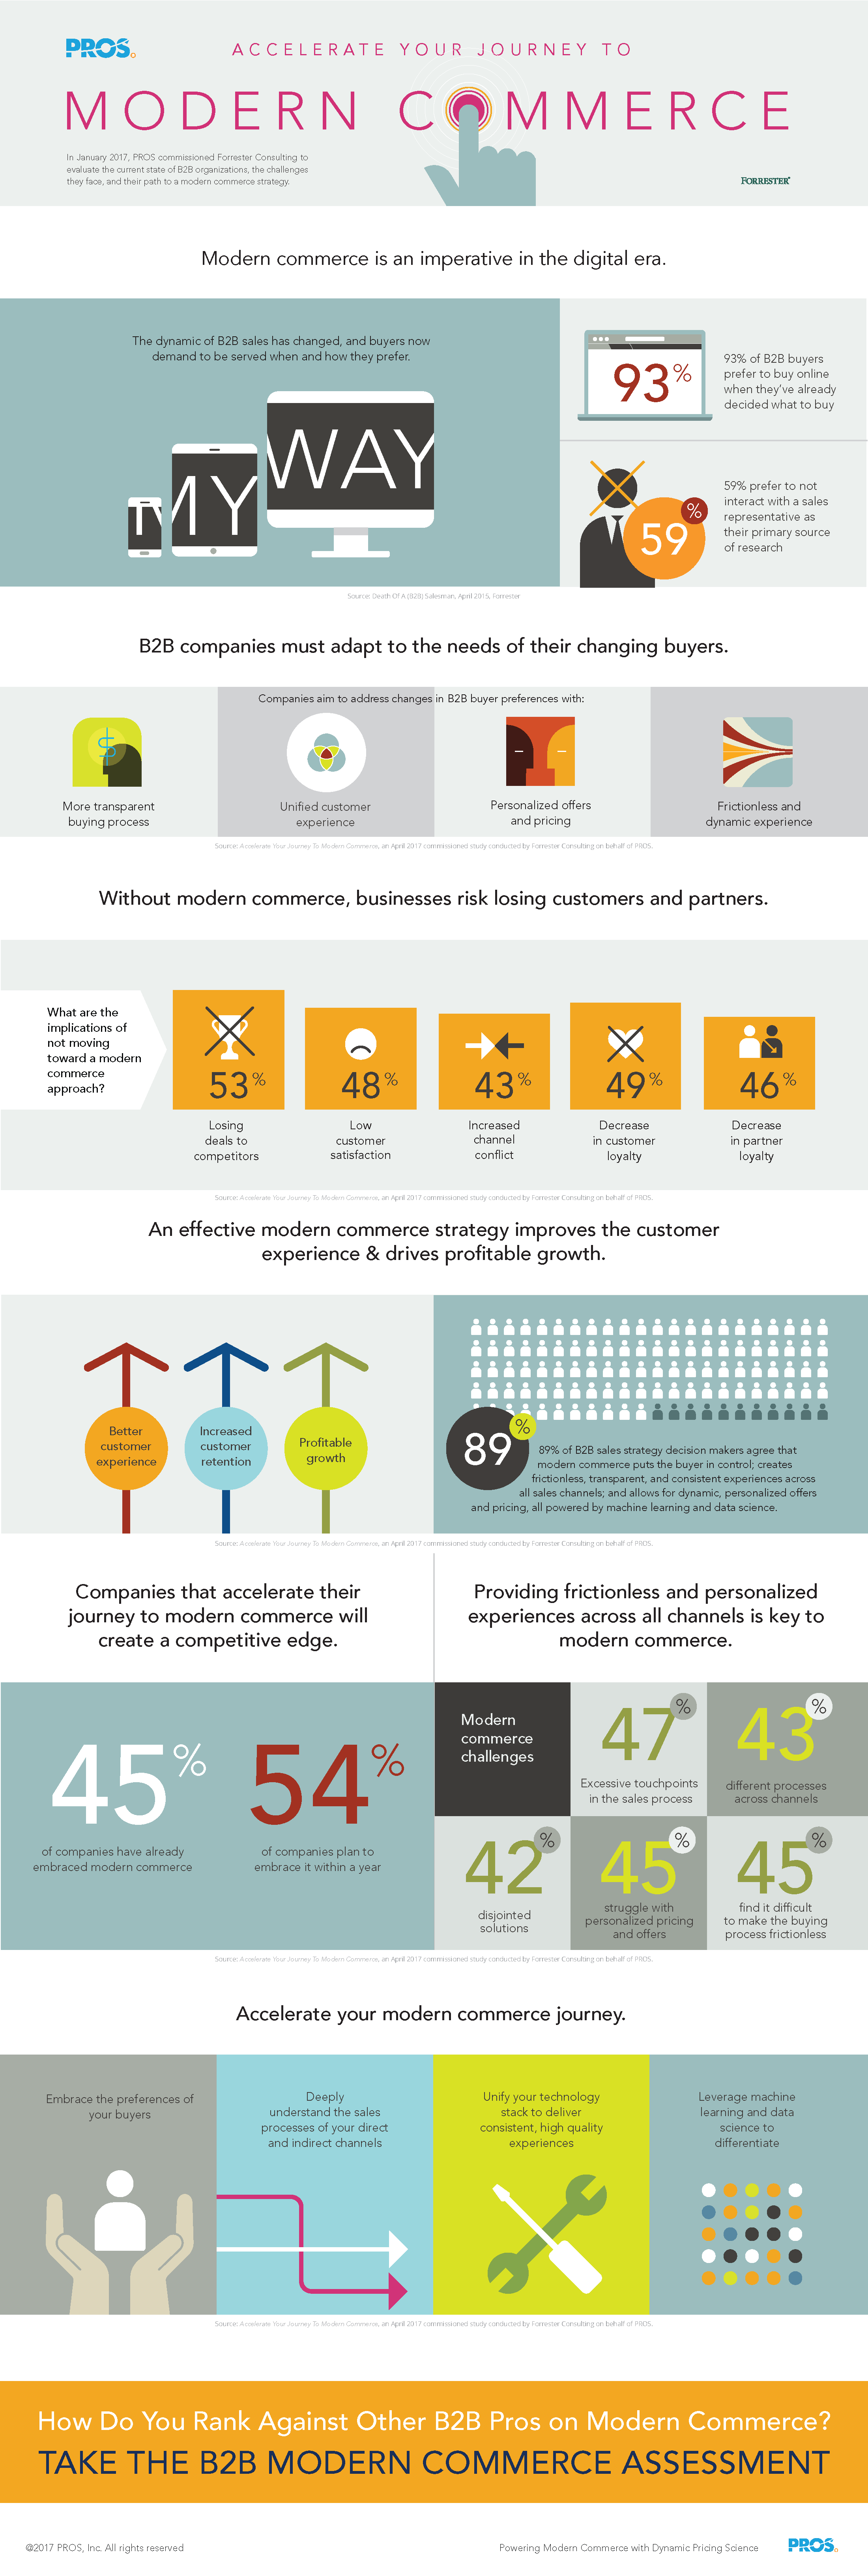 B2B Infographic Accelerate Your Journey to Modern Commerce